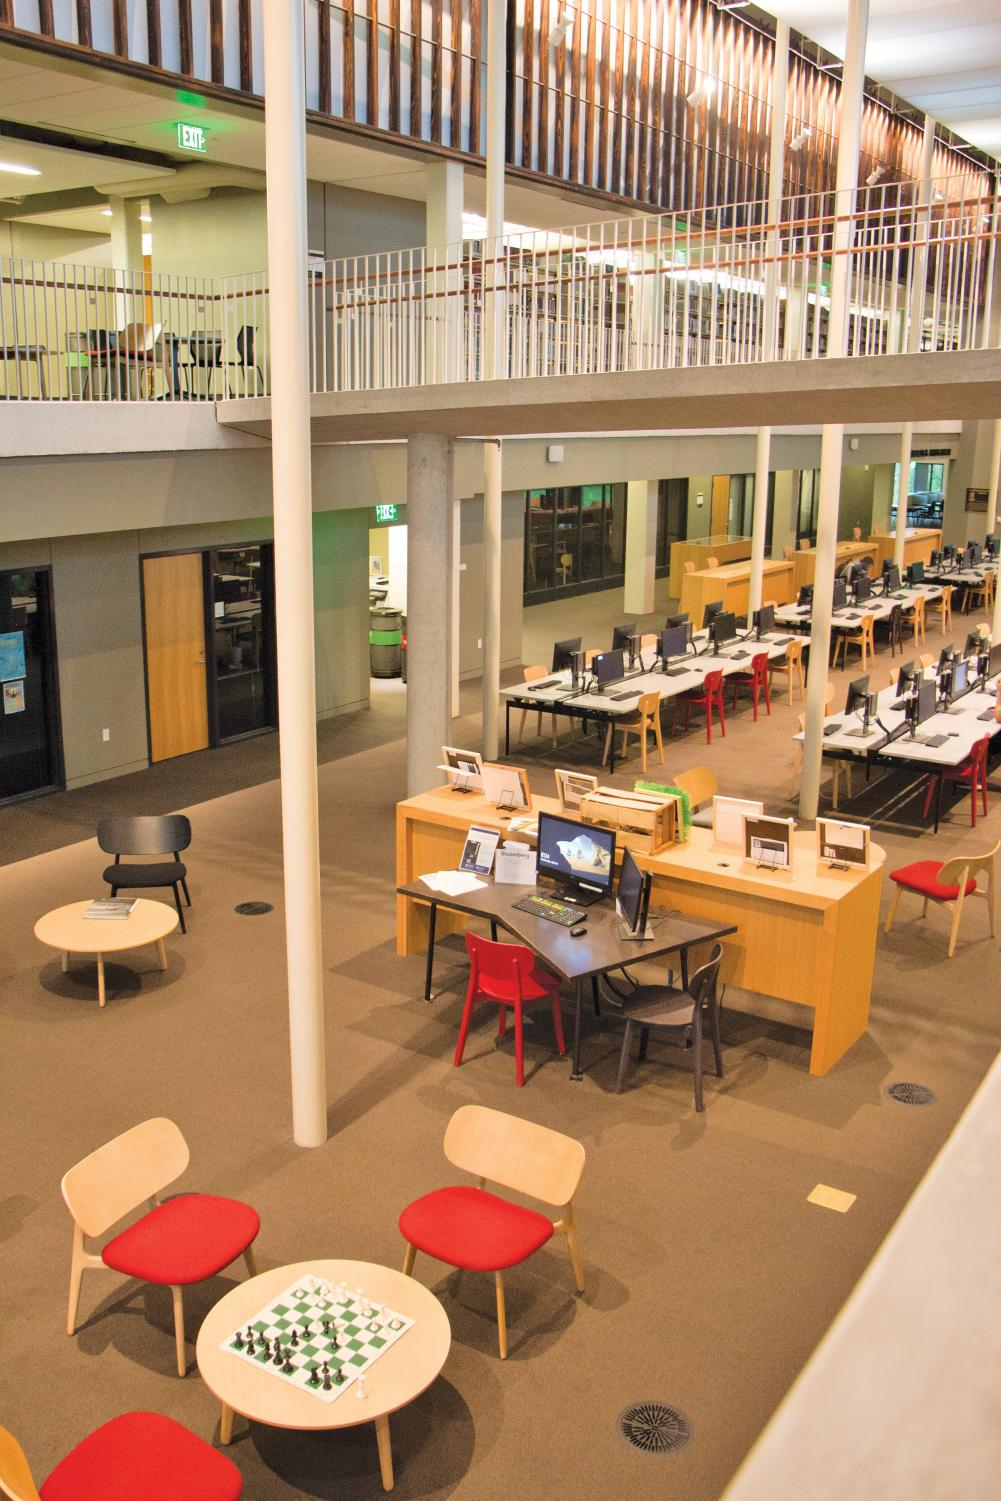 Many students enjoy spending time in the library. However, many believe that a 24 hour library would make them more productive.